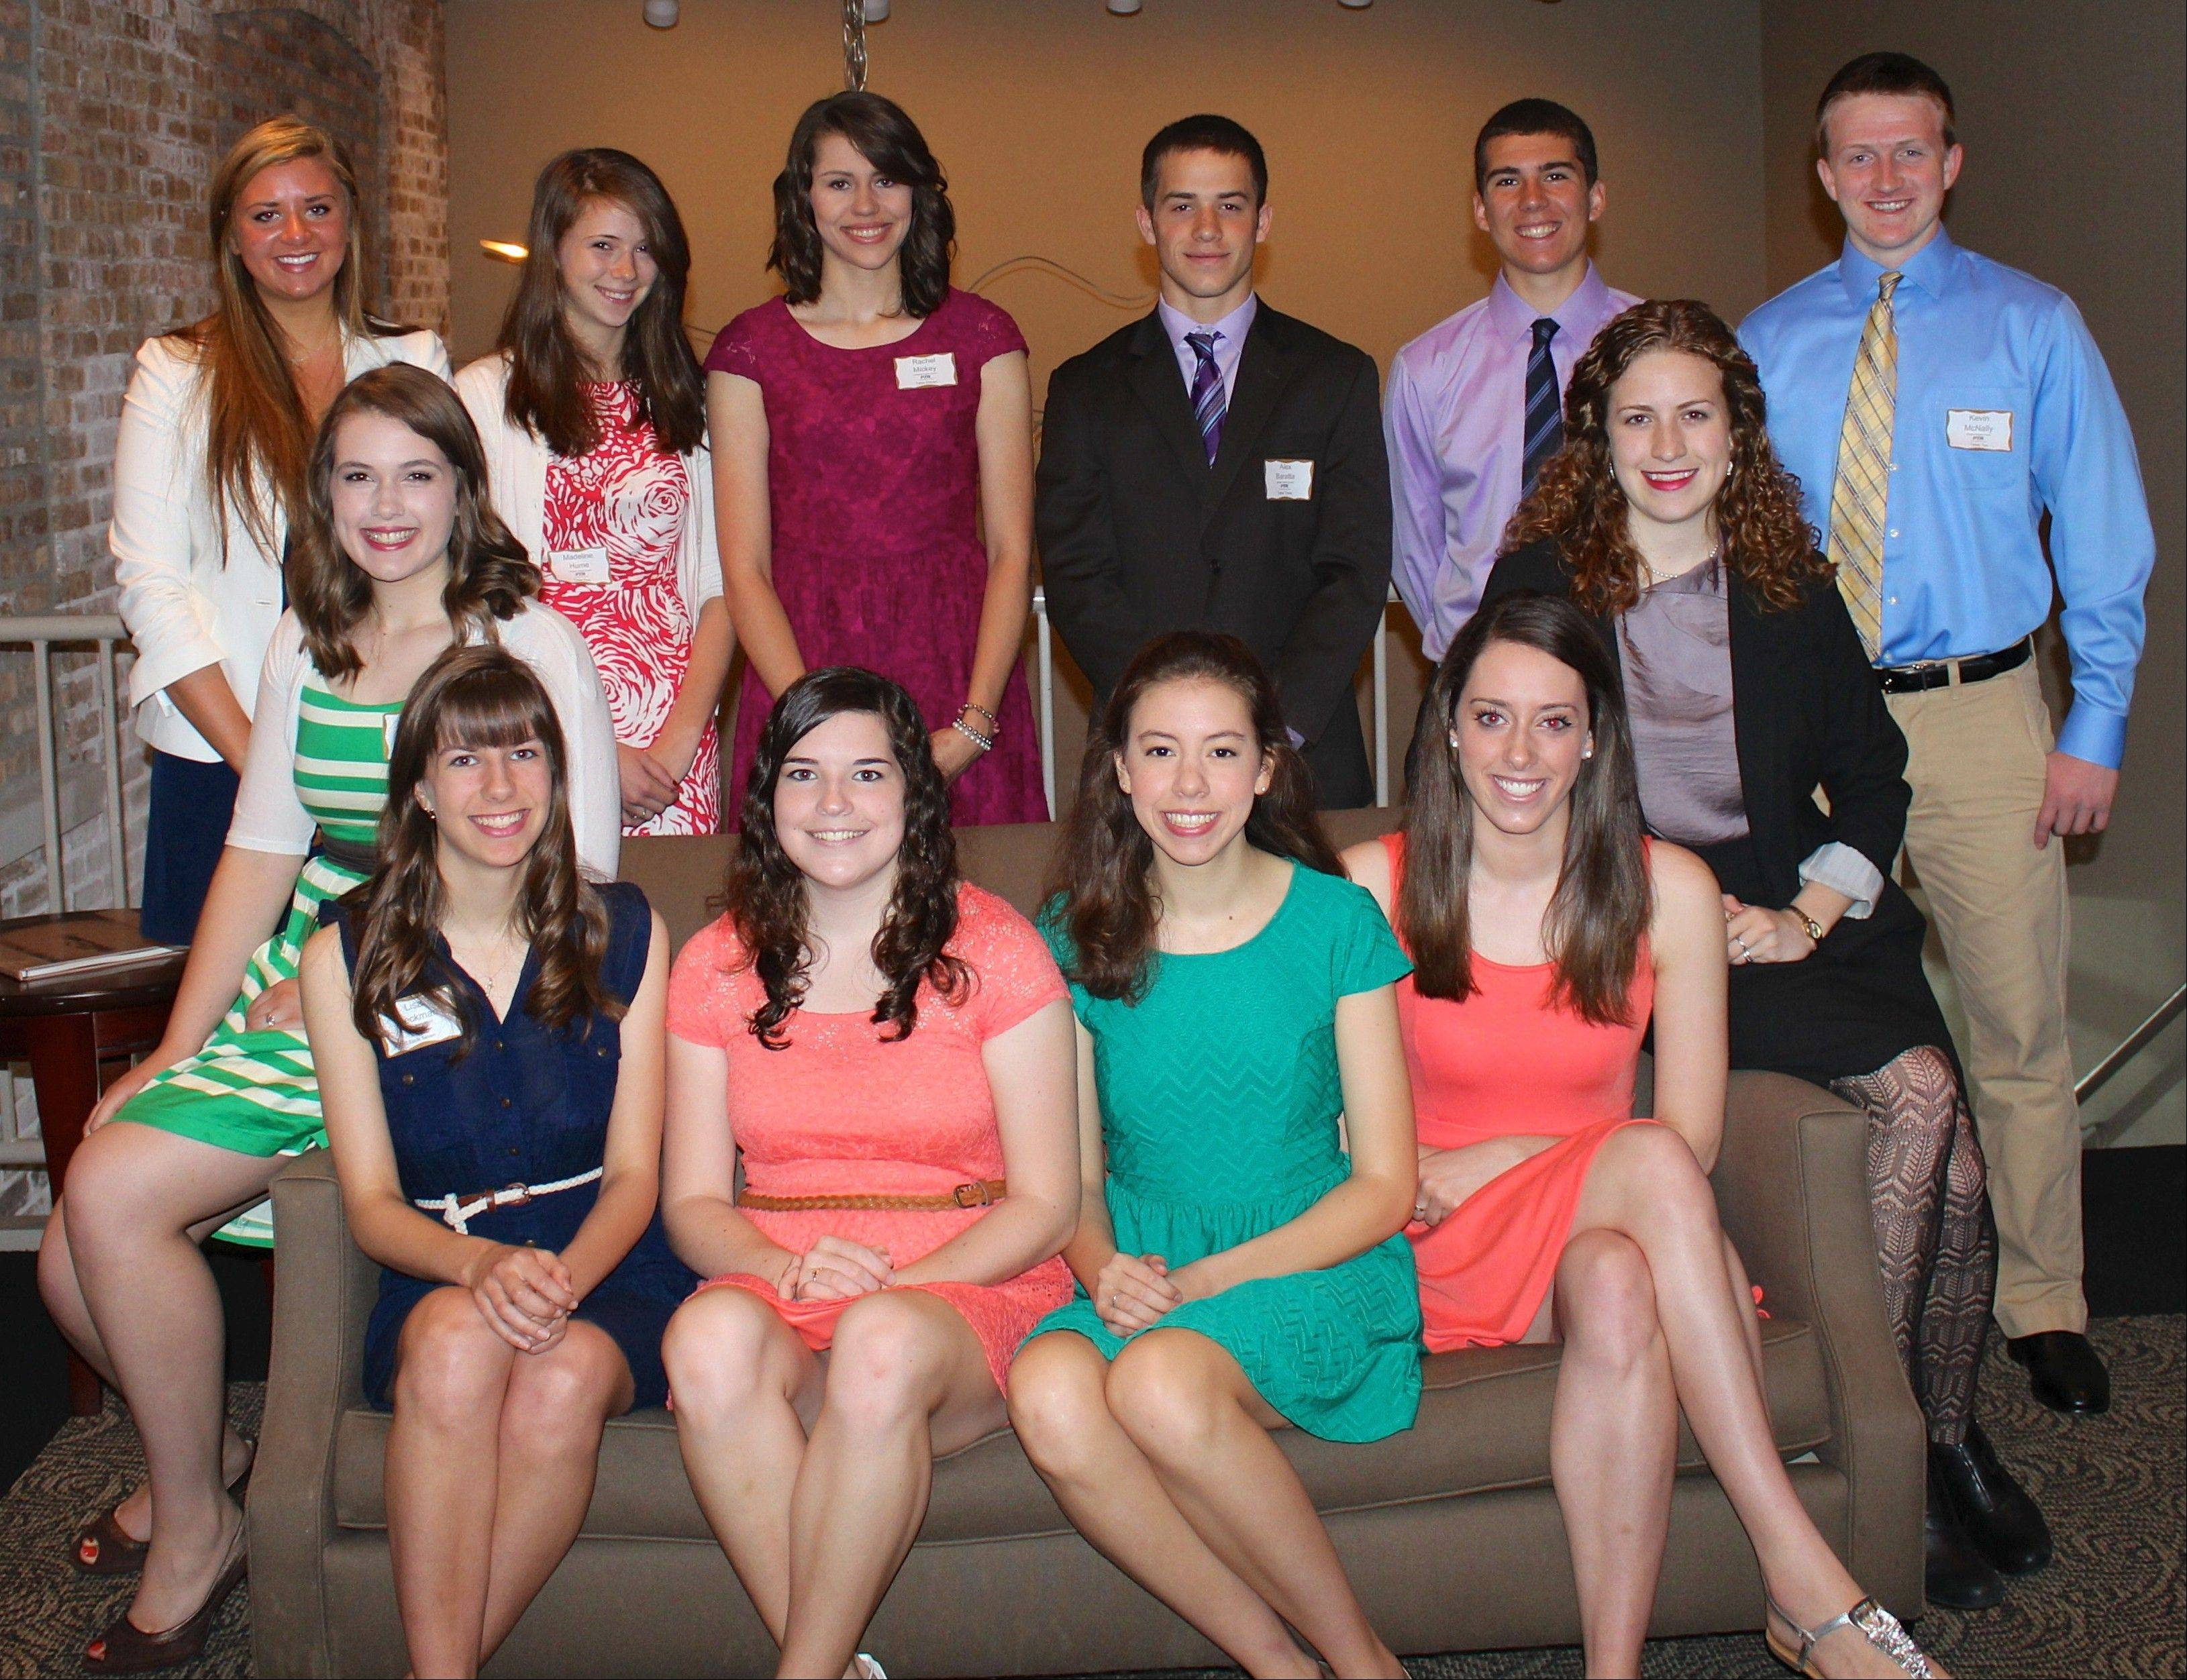 2013 Arlington Heights Council of PTAs scholarship recipients, from left, are: Back row: Caylee Mahon, Madeline Hume, Rachel Mickey, Alex Baratta, Nick Schwingbeck and Kevin McNally; Seated: Carolyn DeSalvo, Lisa Dieckman, Noreen Jay, Carolyn Brumm, Lauren Nagle and Katelyn Kiner. Not pictured: Annie Dunn.